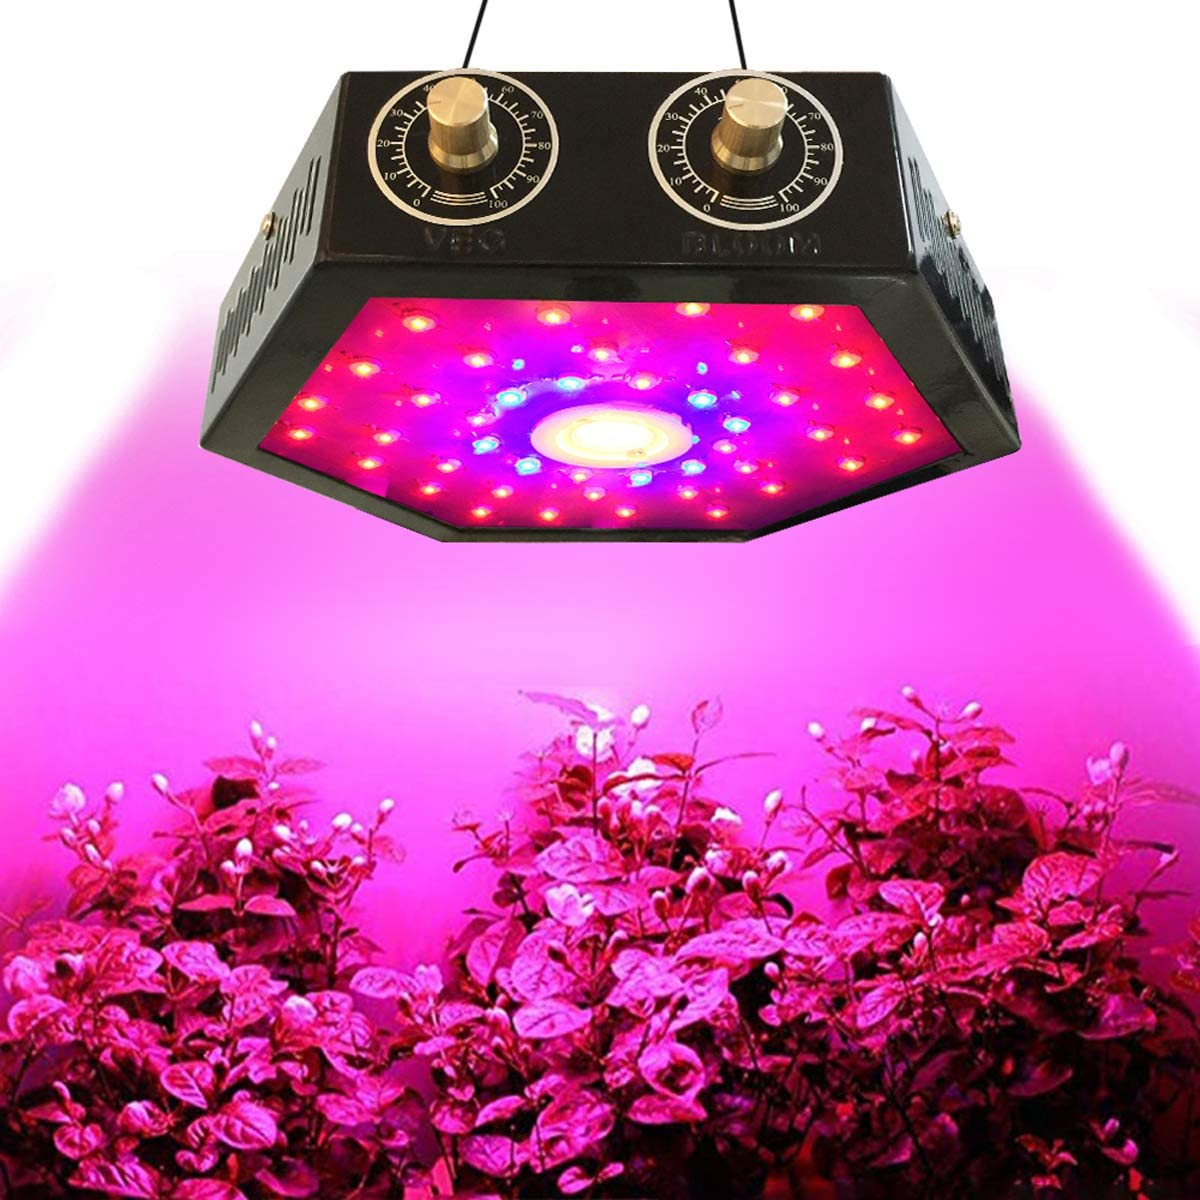 LED Plant Grow Lights Full Spectrum Plant Light Growing Lamps Double Adjustable Switch Veg and Bloom for Indoor Plant Greenhouse Basement Planting Succulent Plants Doub-chip 10W LEDs 1000W